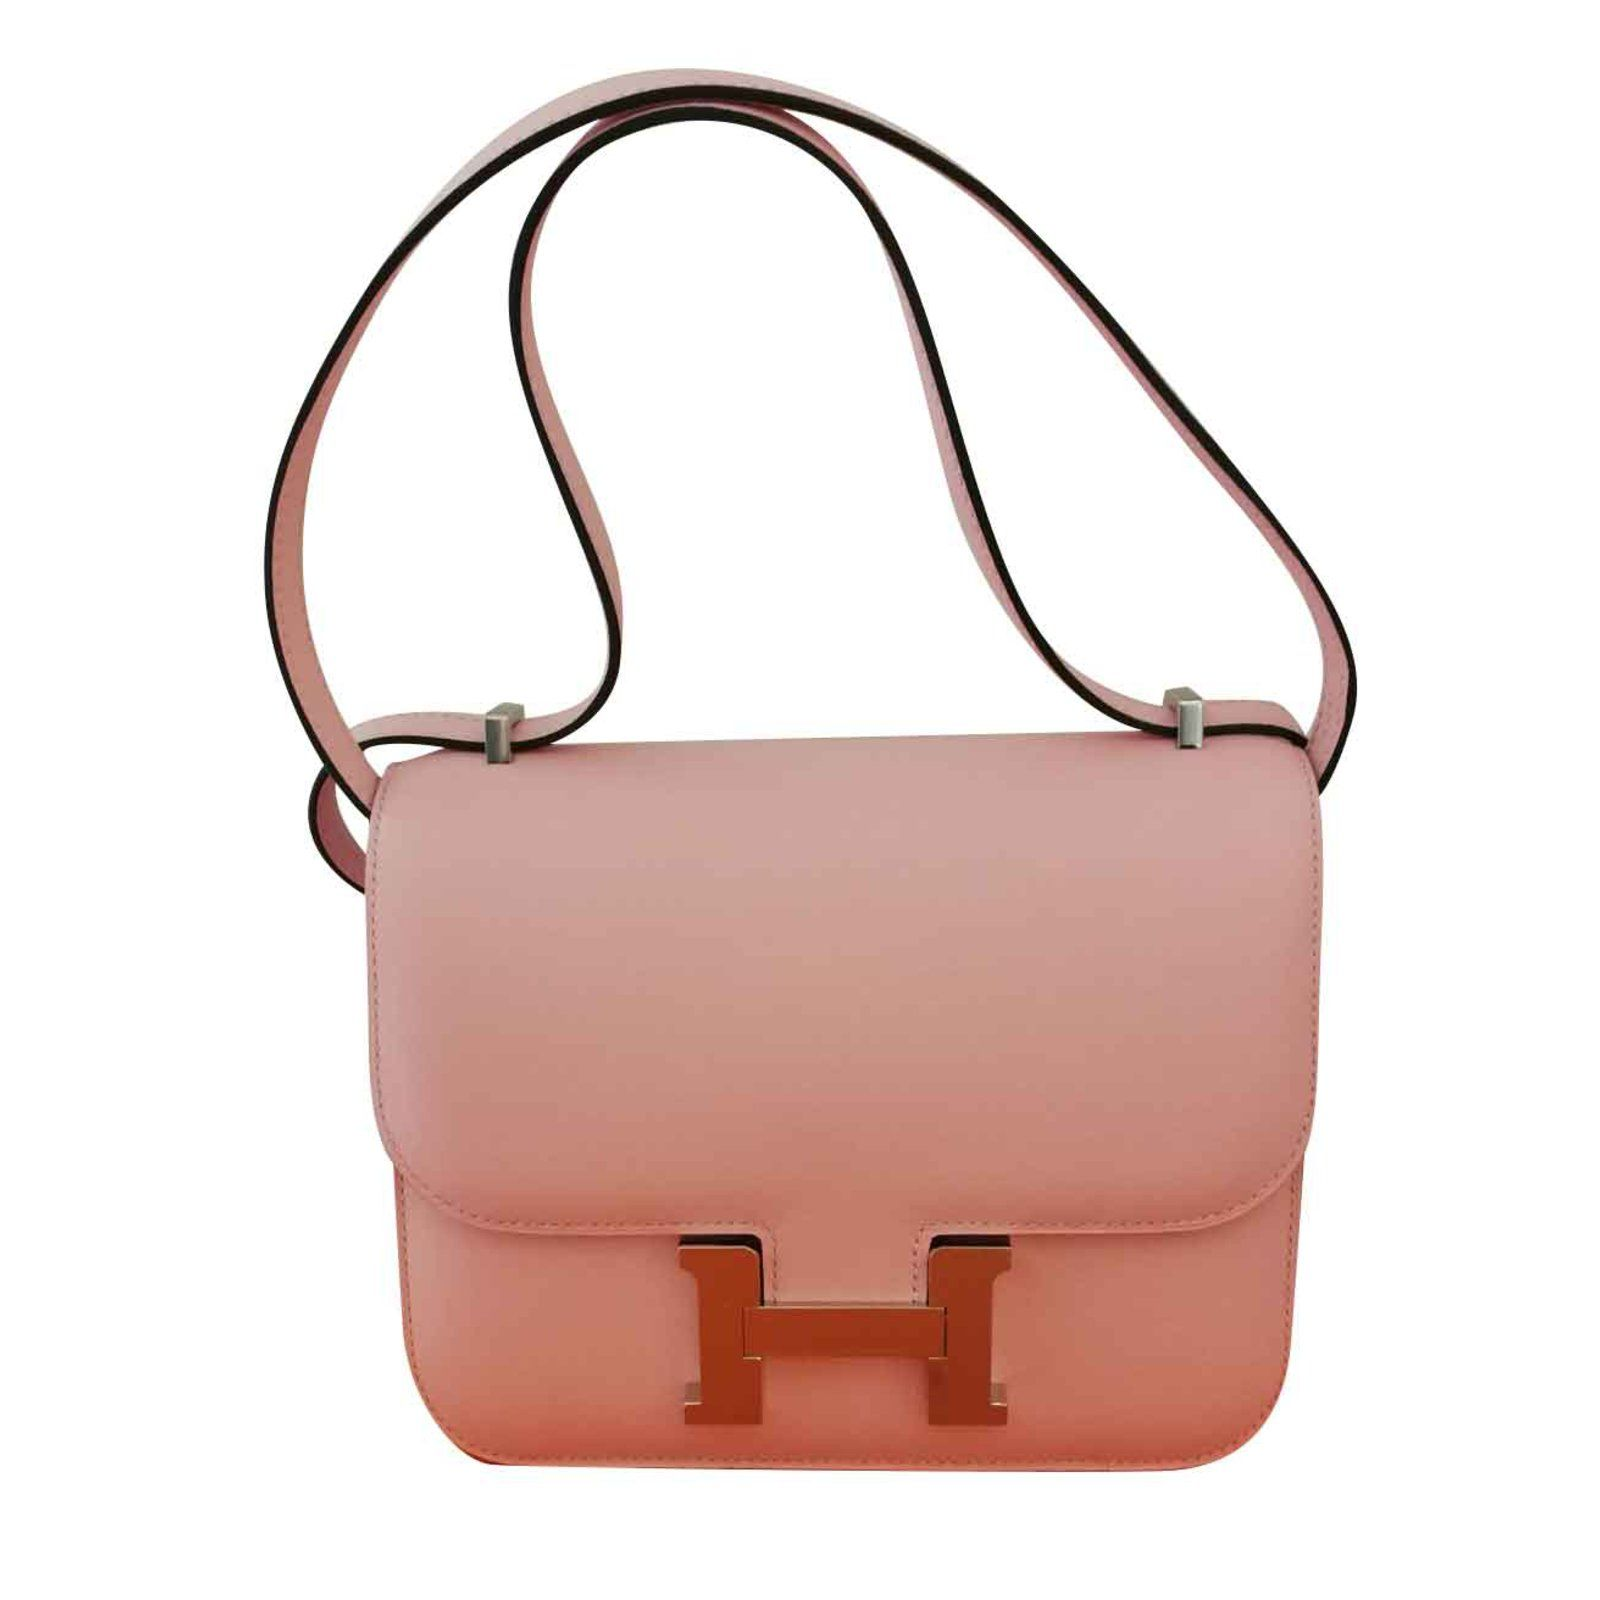 f7202a3dfbf3 Hermès Hermès constance mini Handbags Leather Pink ref.102811 - Joli Closet